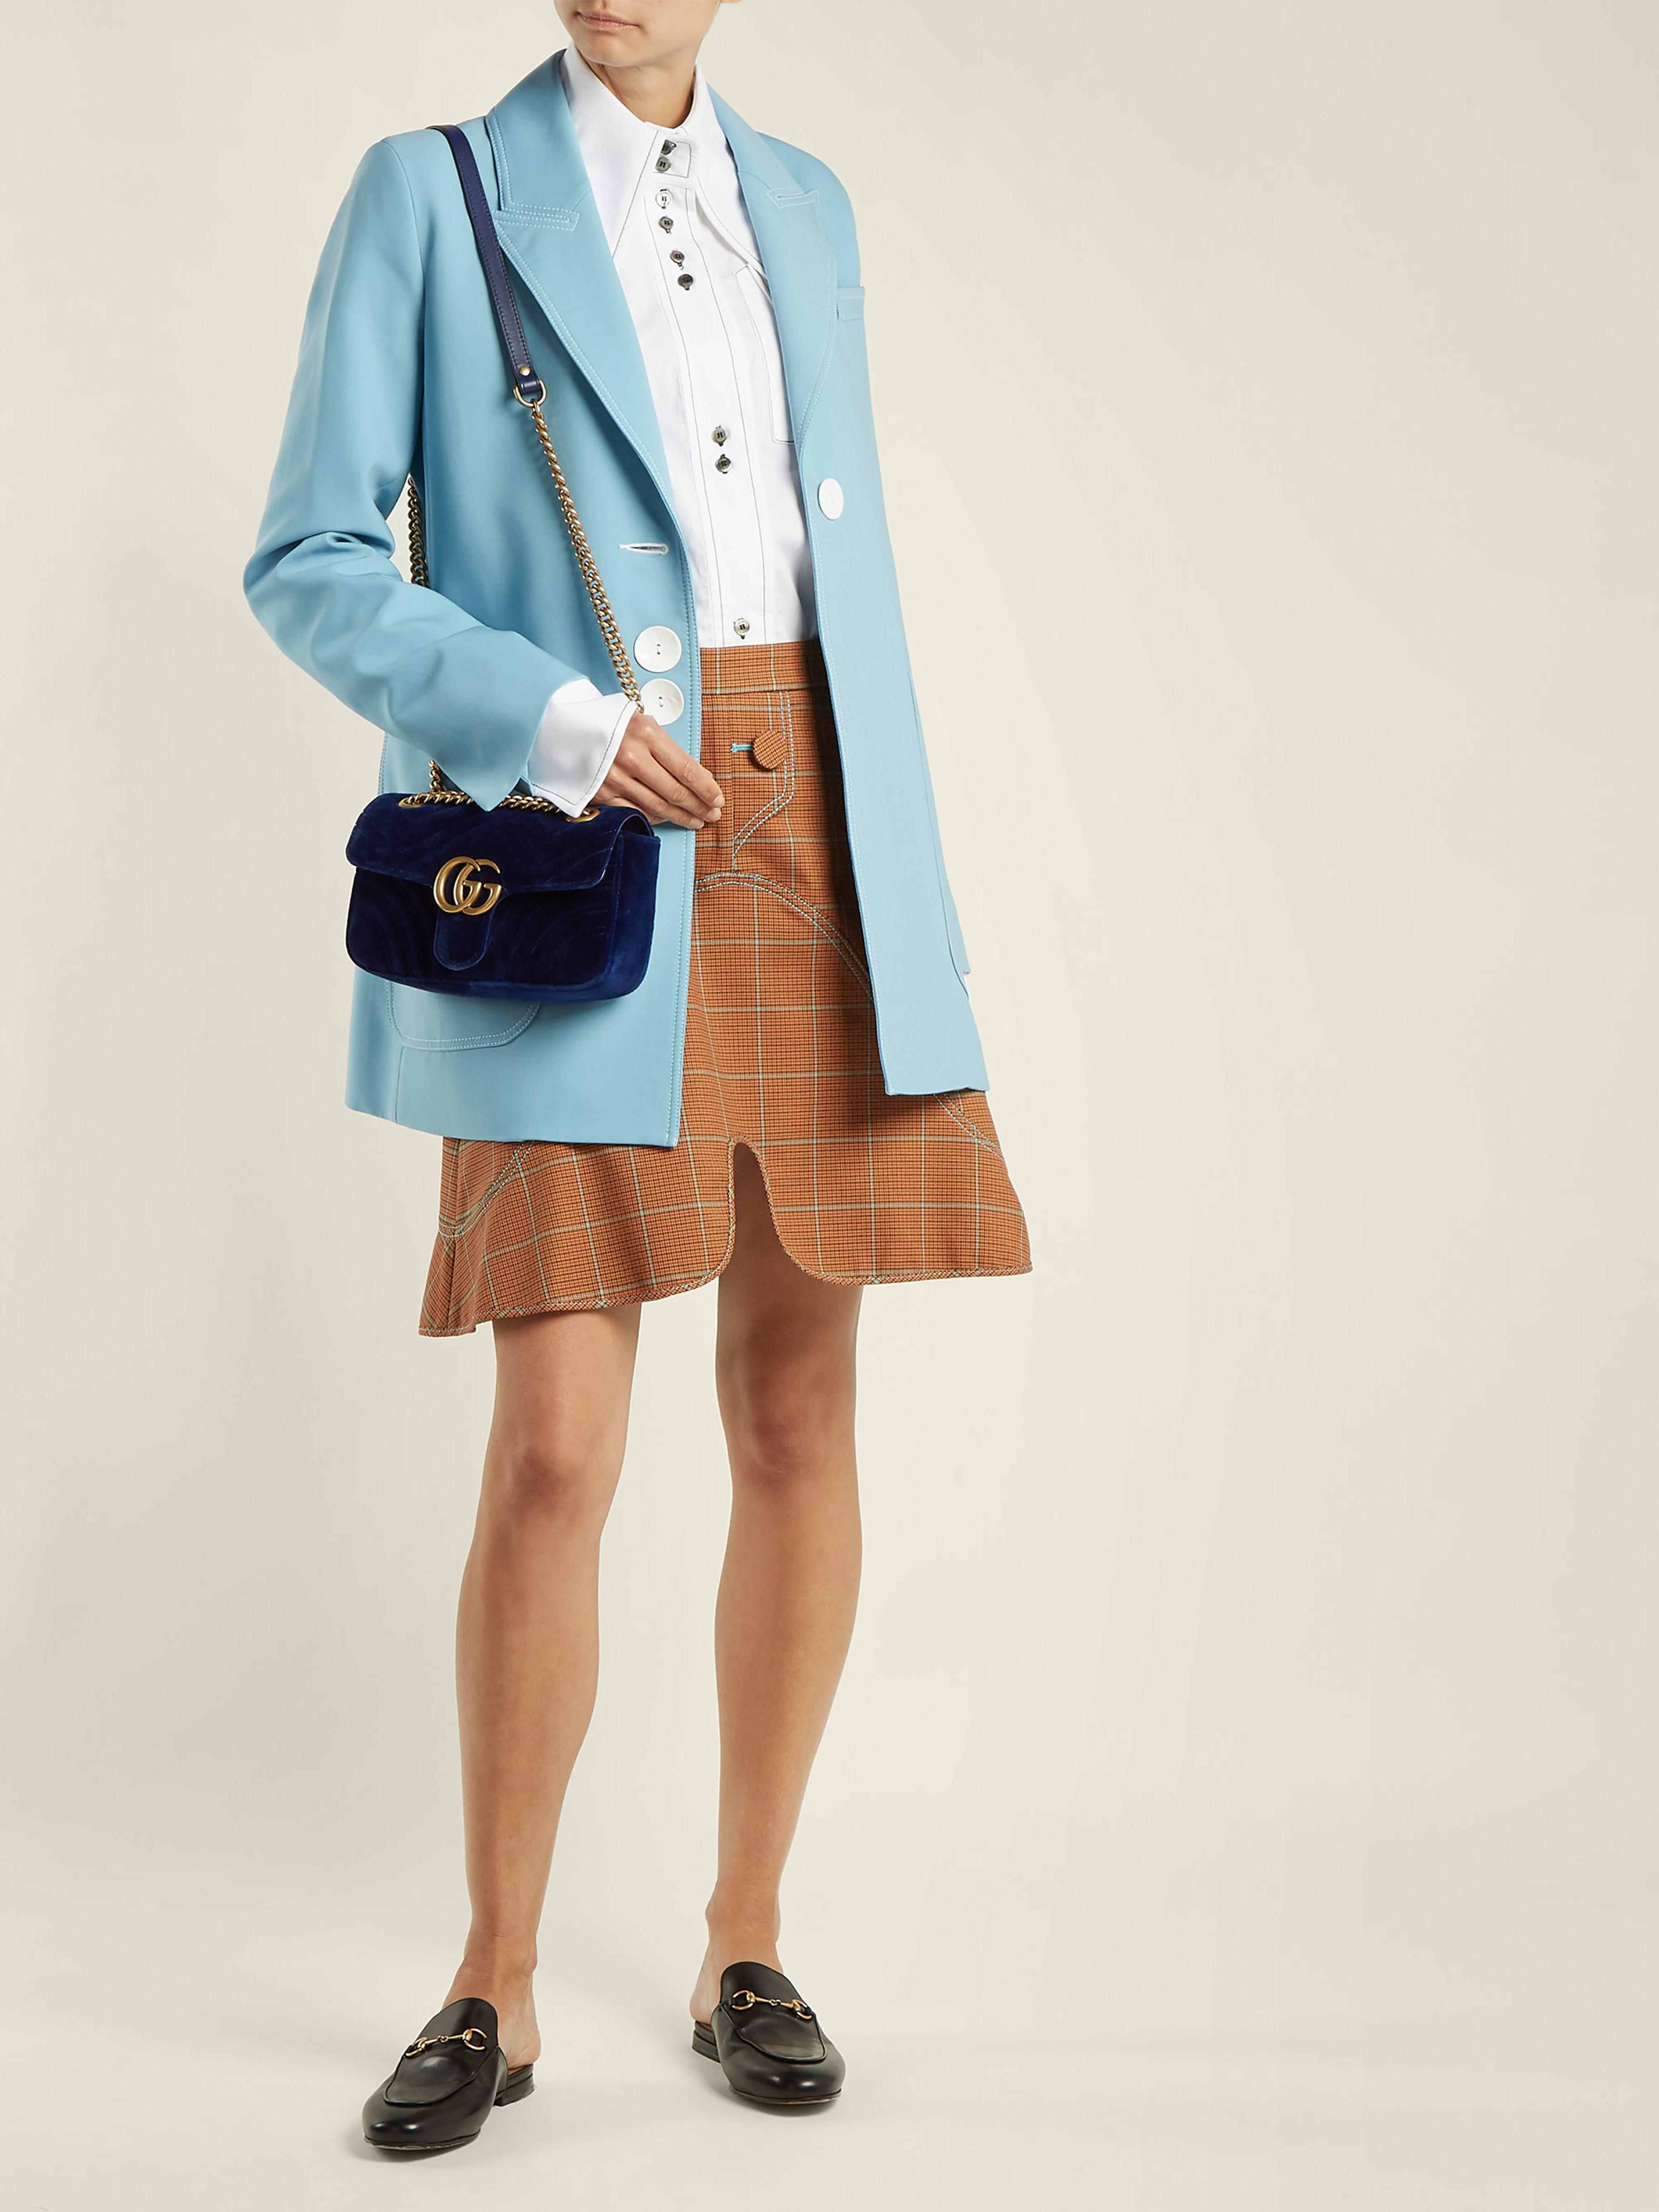 dae9e2115de Gucci Gg Marmont Mini Quilted Velvet Cross Body Bag in Blue - Save 14% -  Lyst